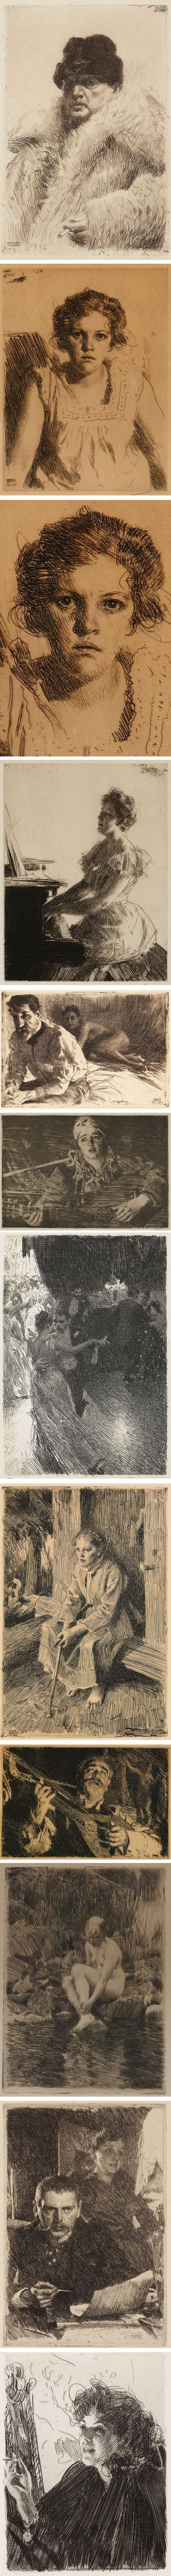 Anders Zorn's etchings